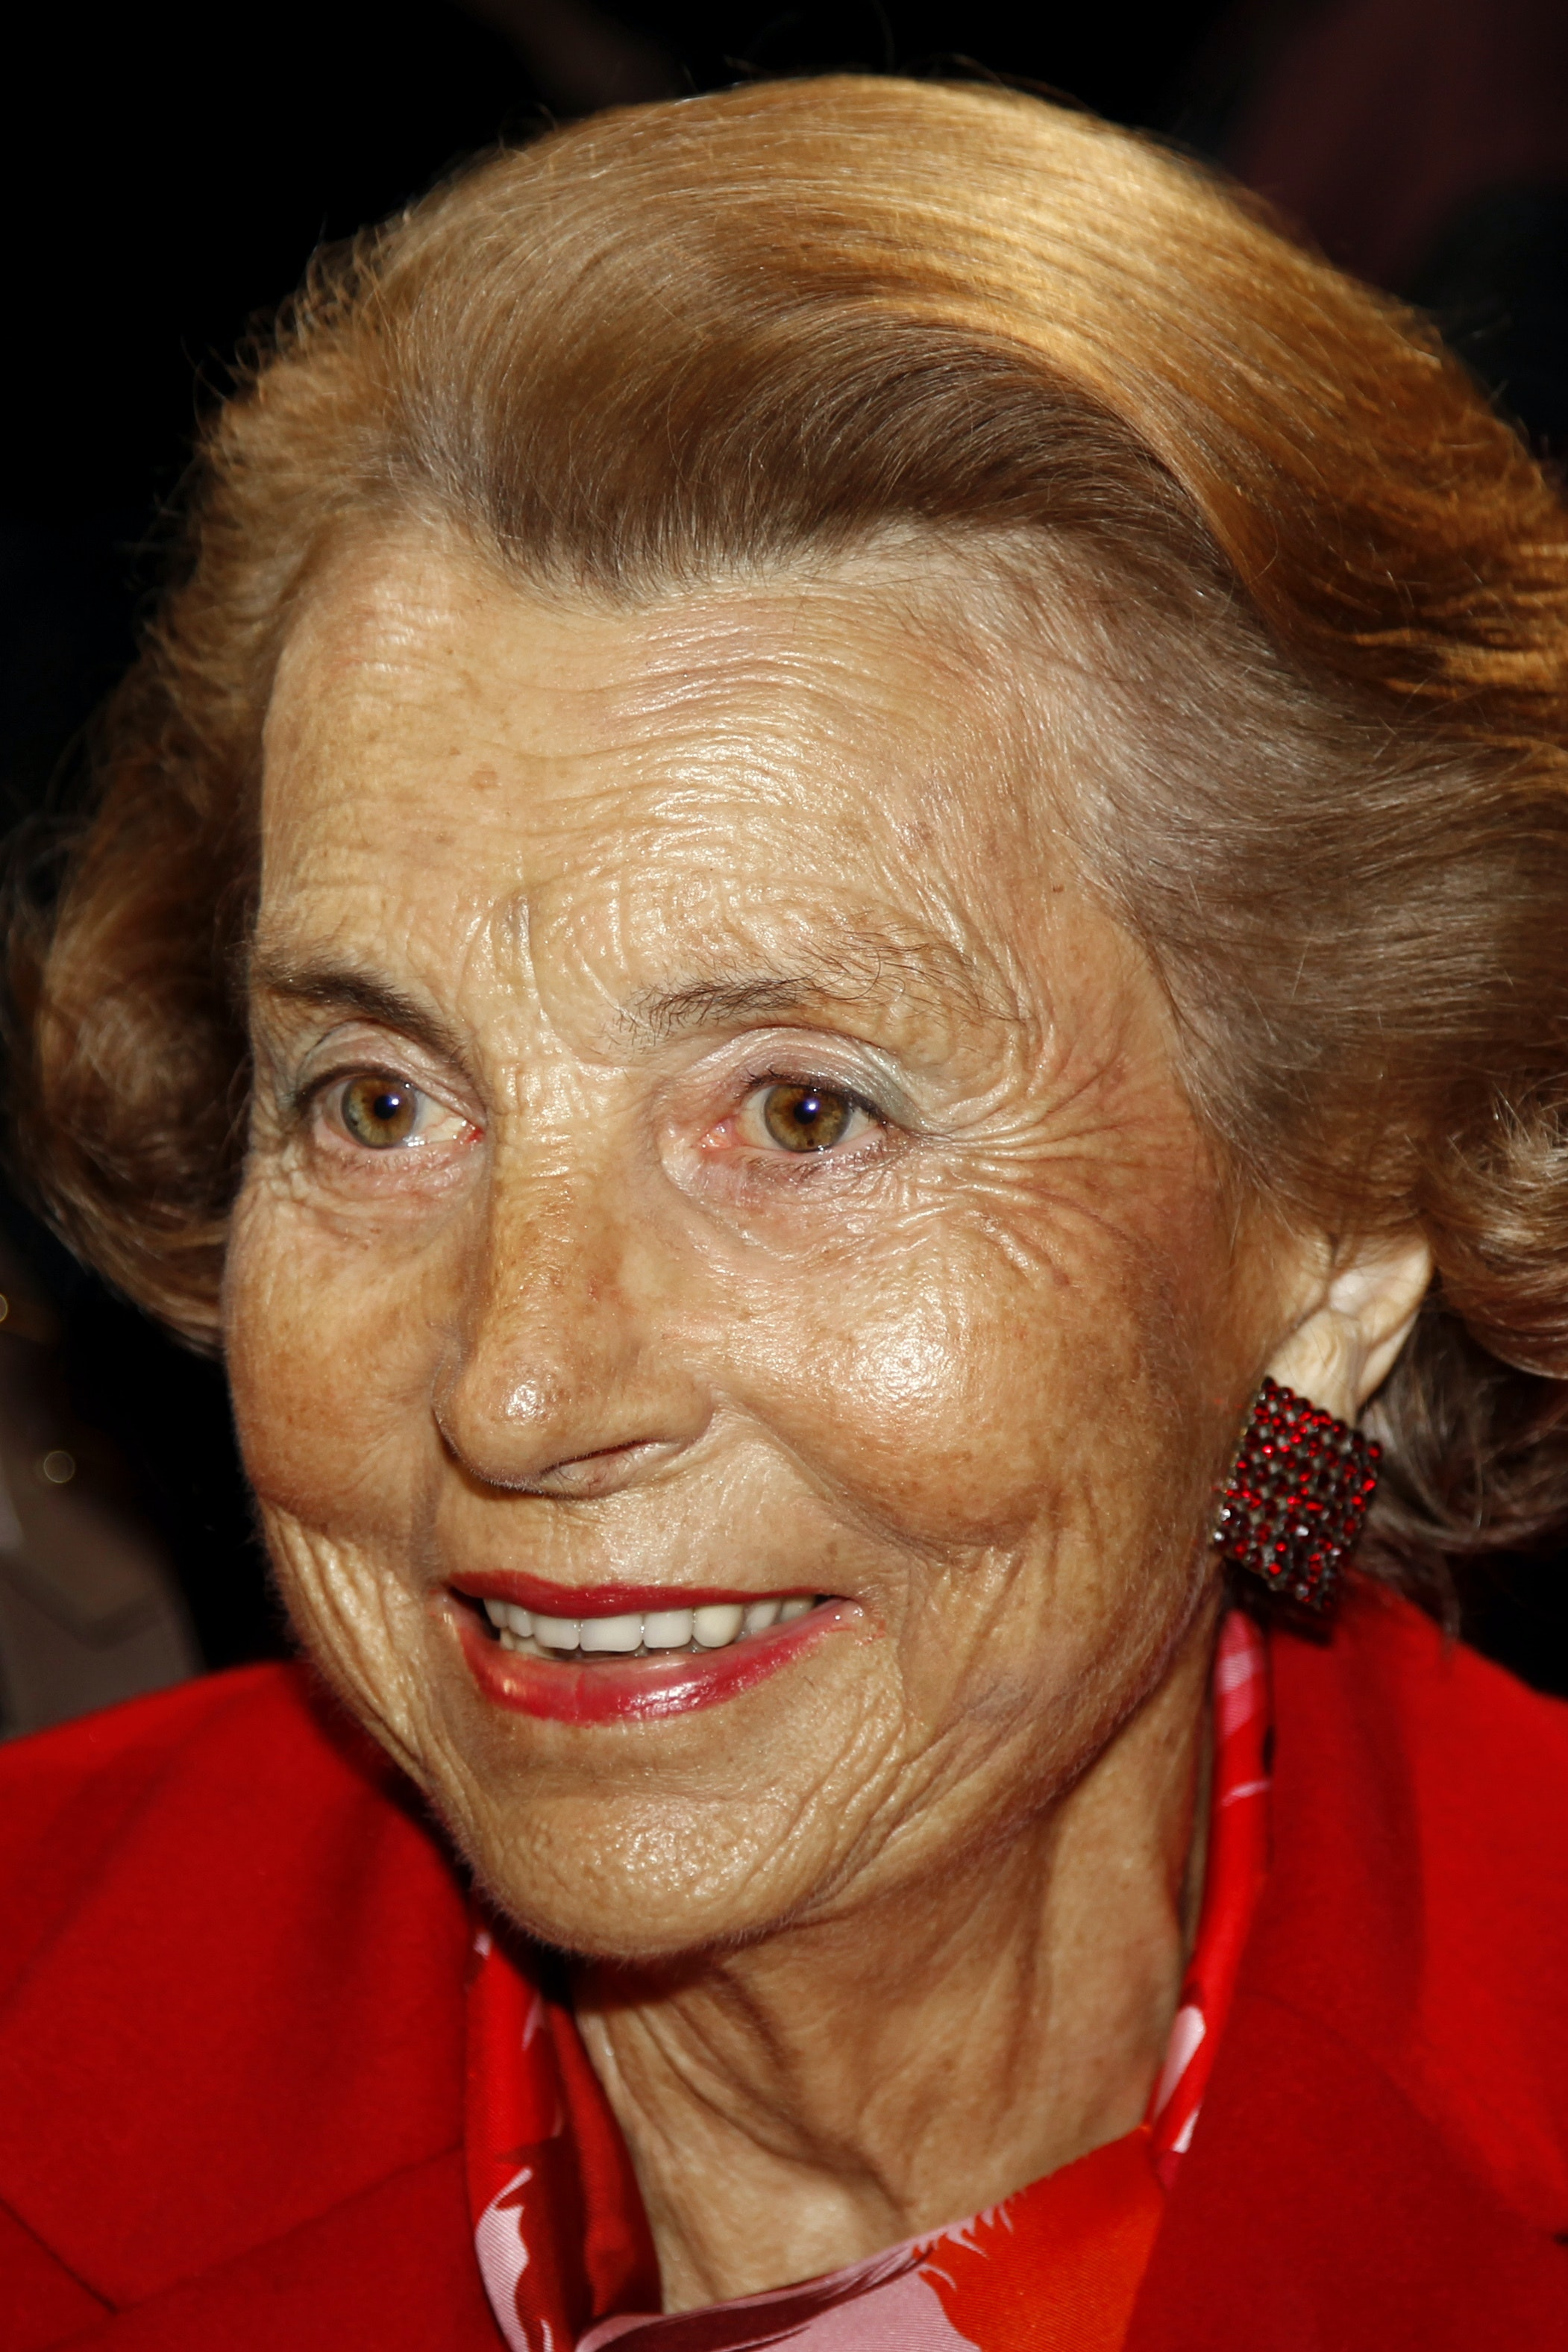 Liliane Bettencourt, heiress to the L'Oreal fortune, attends French designer Franck Sorbier's Haute Couture Spring-Summer 2011 fashion show in Paris January 26, 2011.  REUTERS/Charles Platiau (FRANCE - Tags: FASHION BUSINESS HEADSHOT) - PM1E71Q0ZJU01